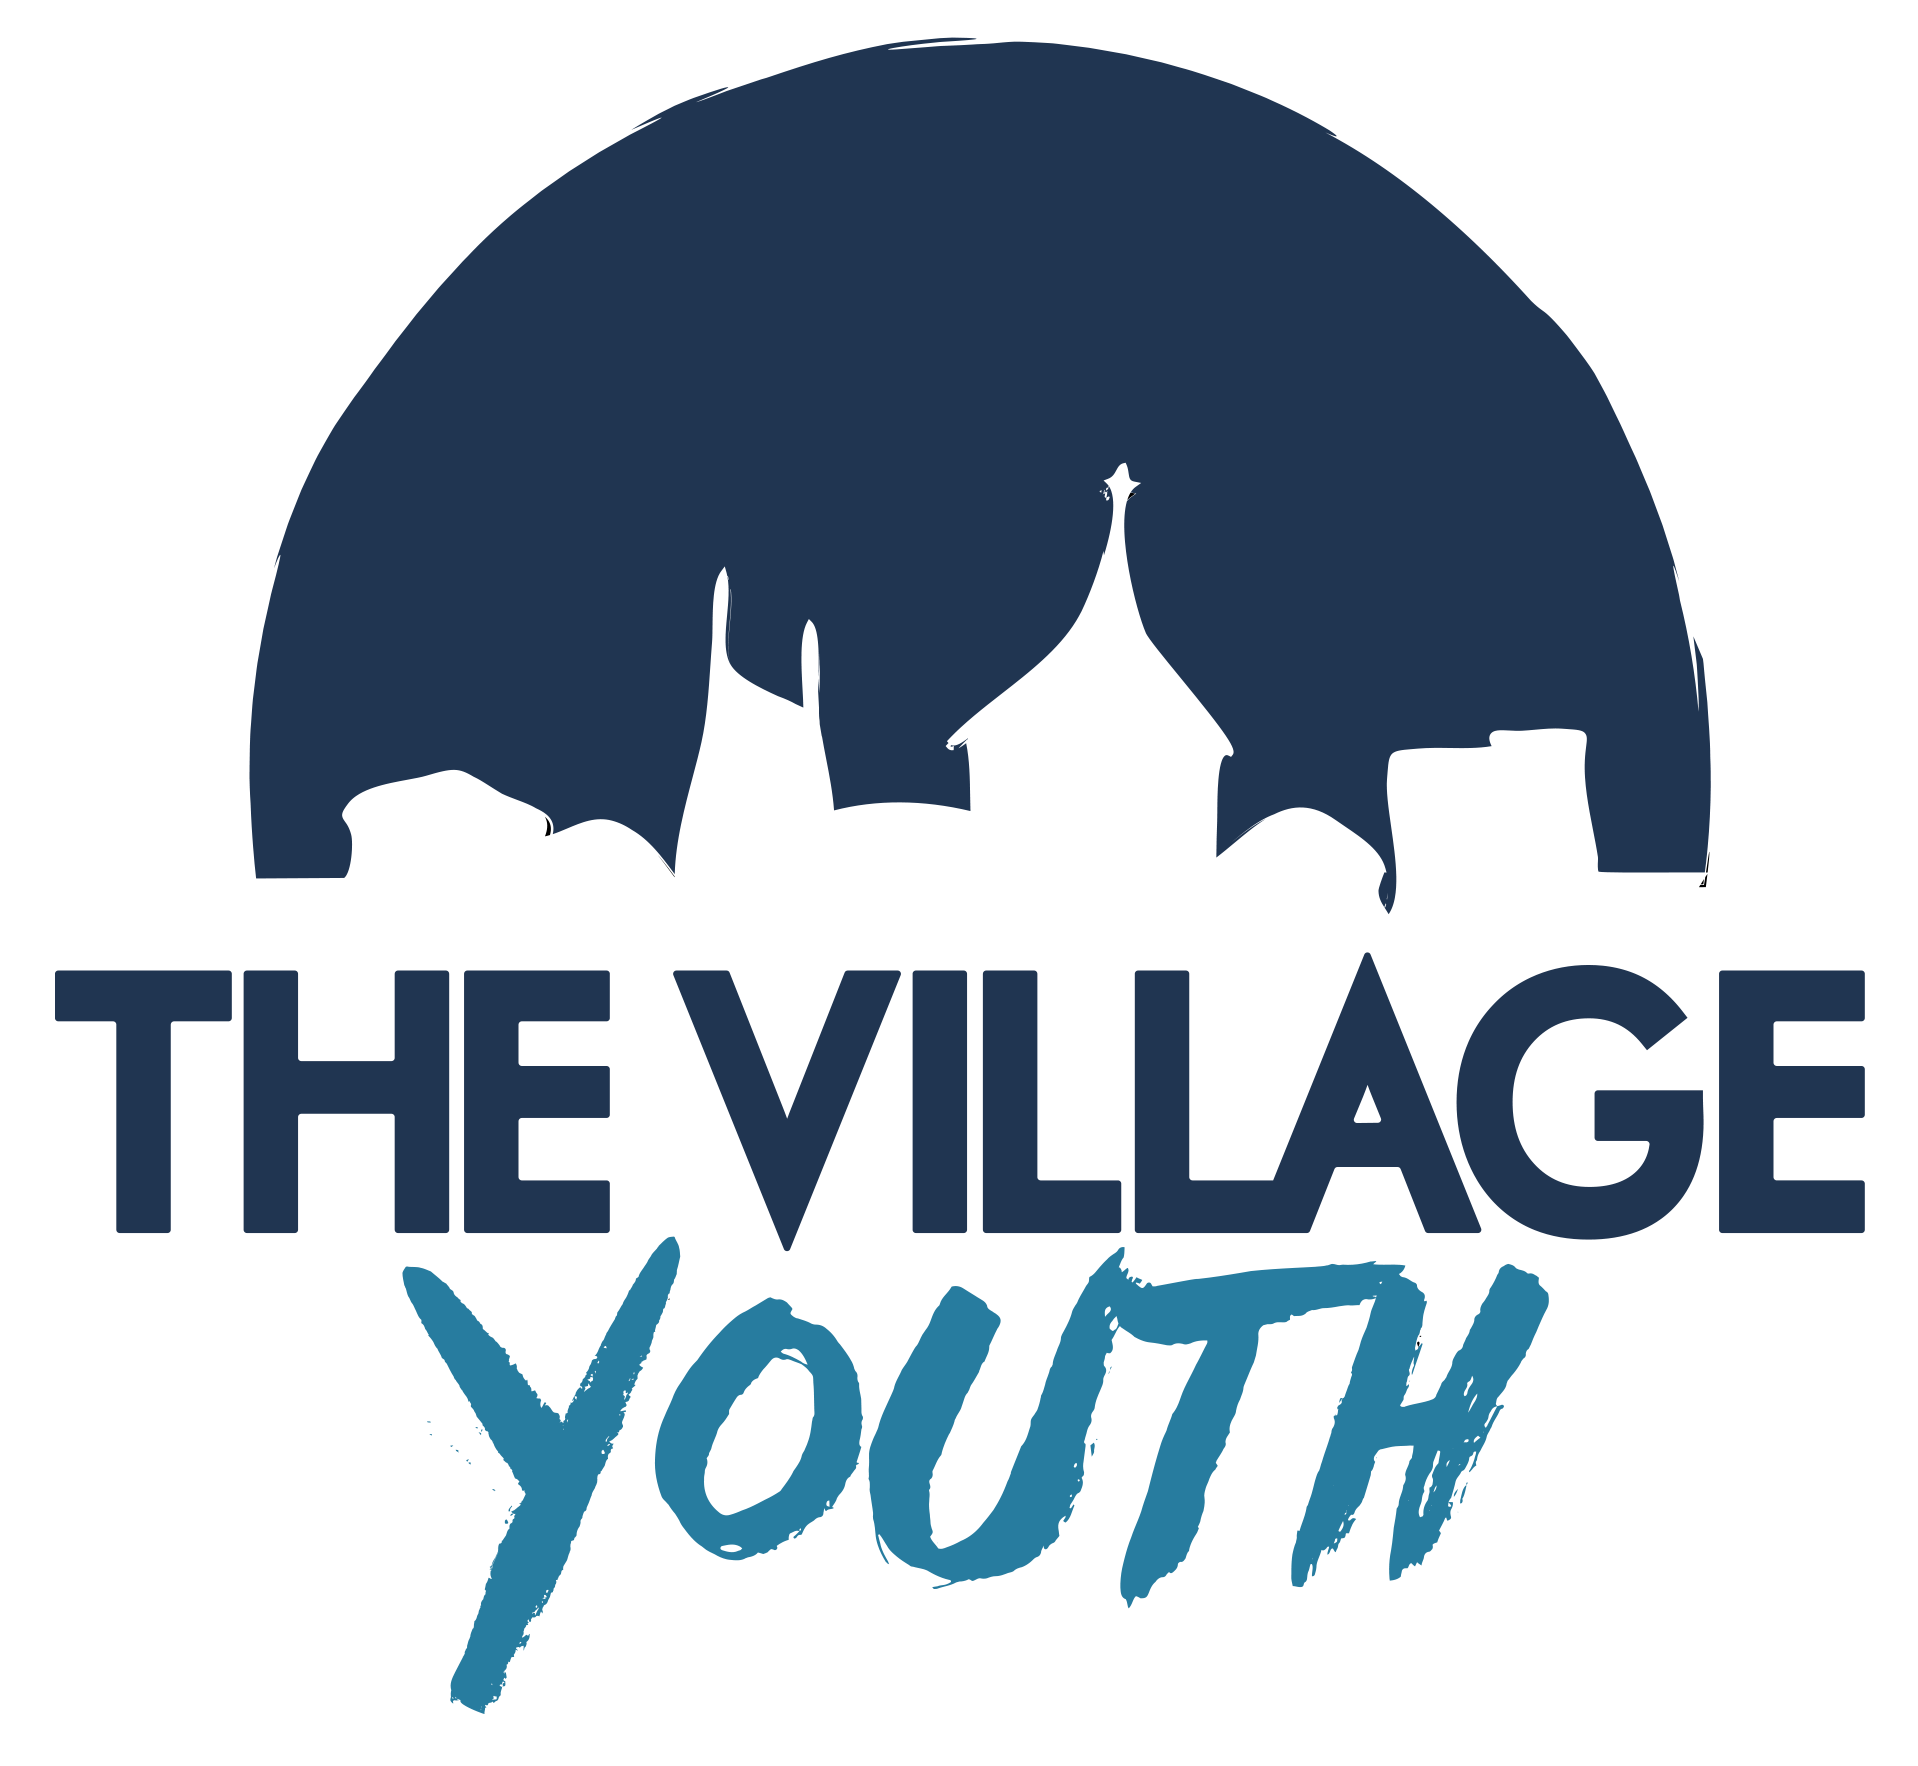 Youth youth new logo colors.png